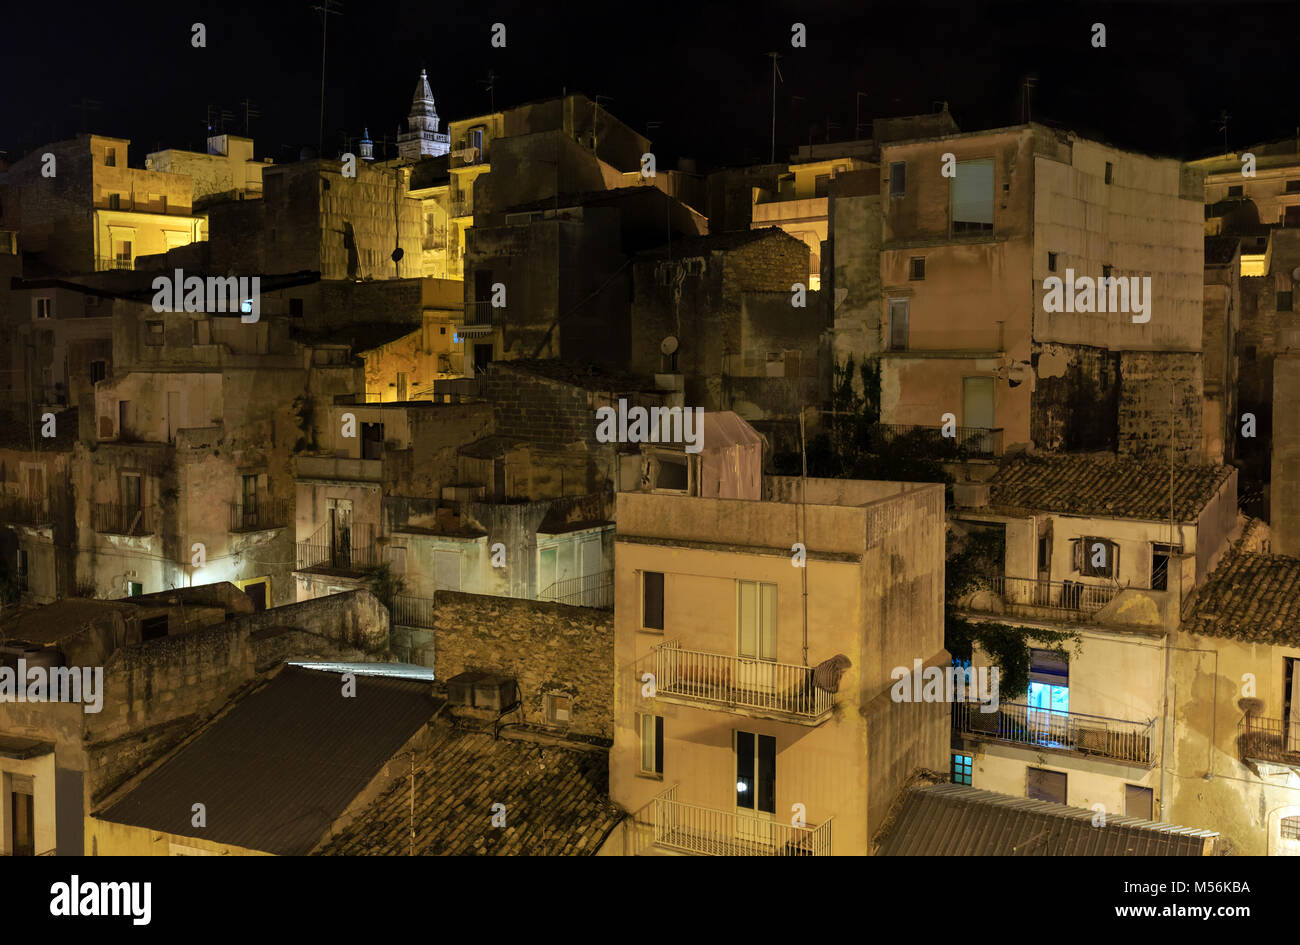 Night Ragusa town, Sicily, Italy - Stock Image